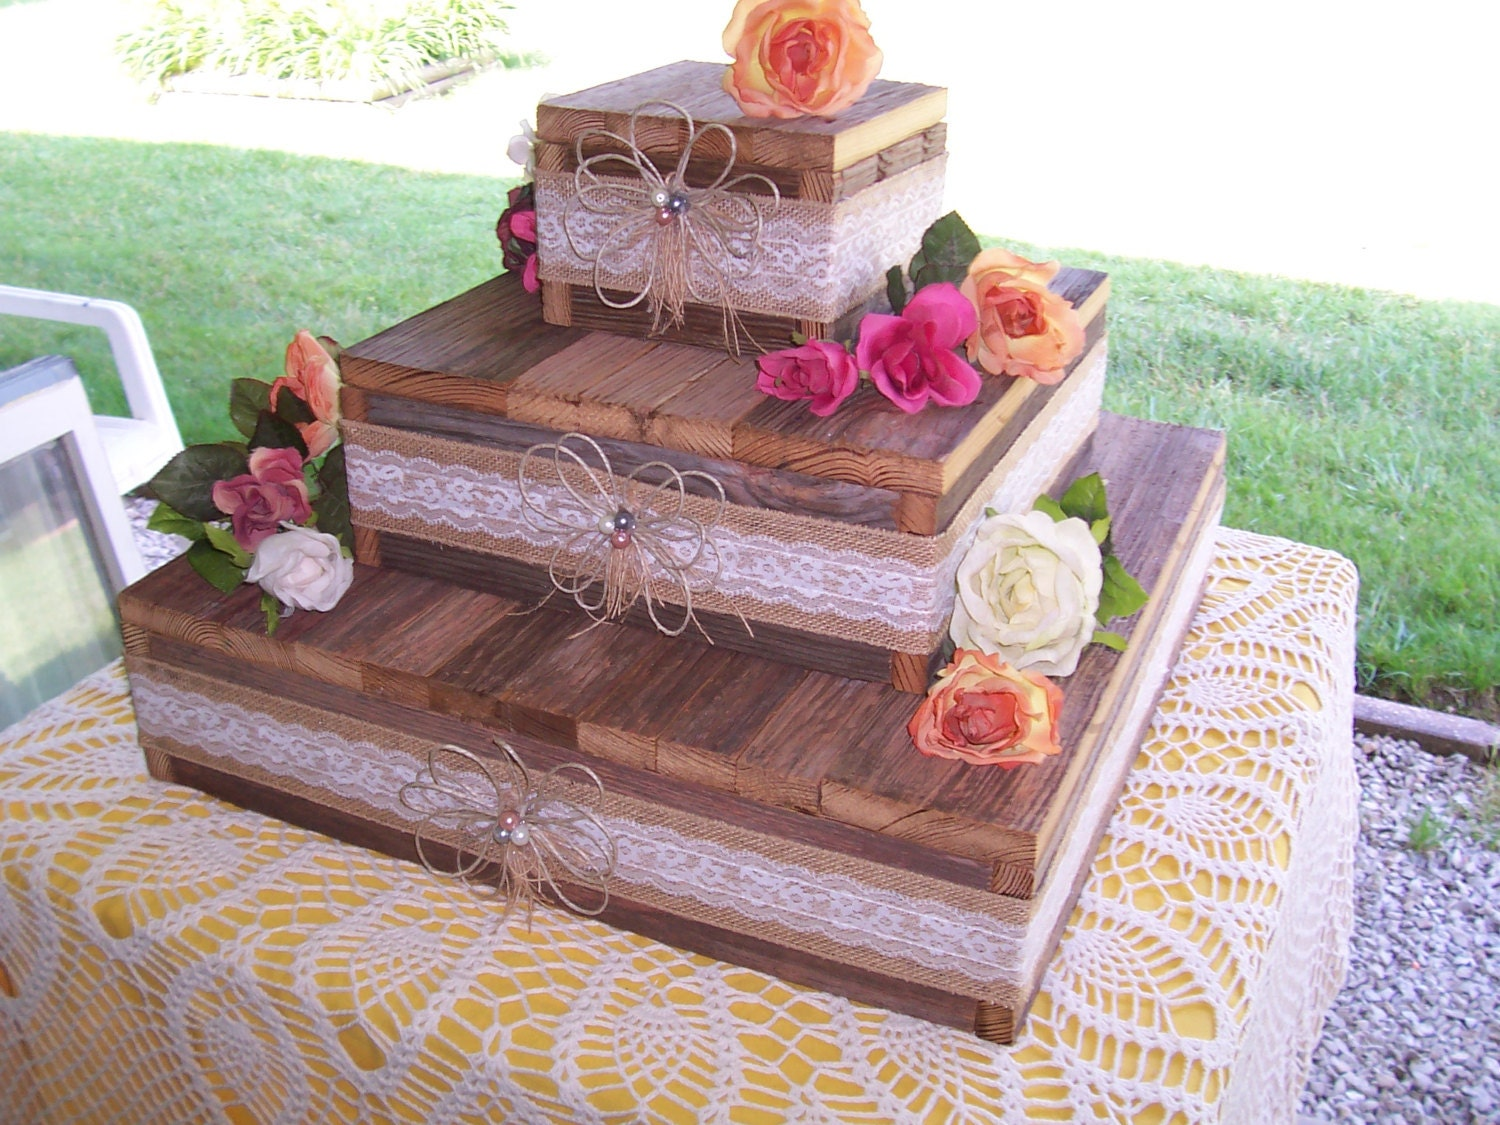 wedding cake stand reception decorations cupcake stands 3 tier. Black Bedroom Furniture Sets. Home Design Ideas